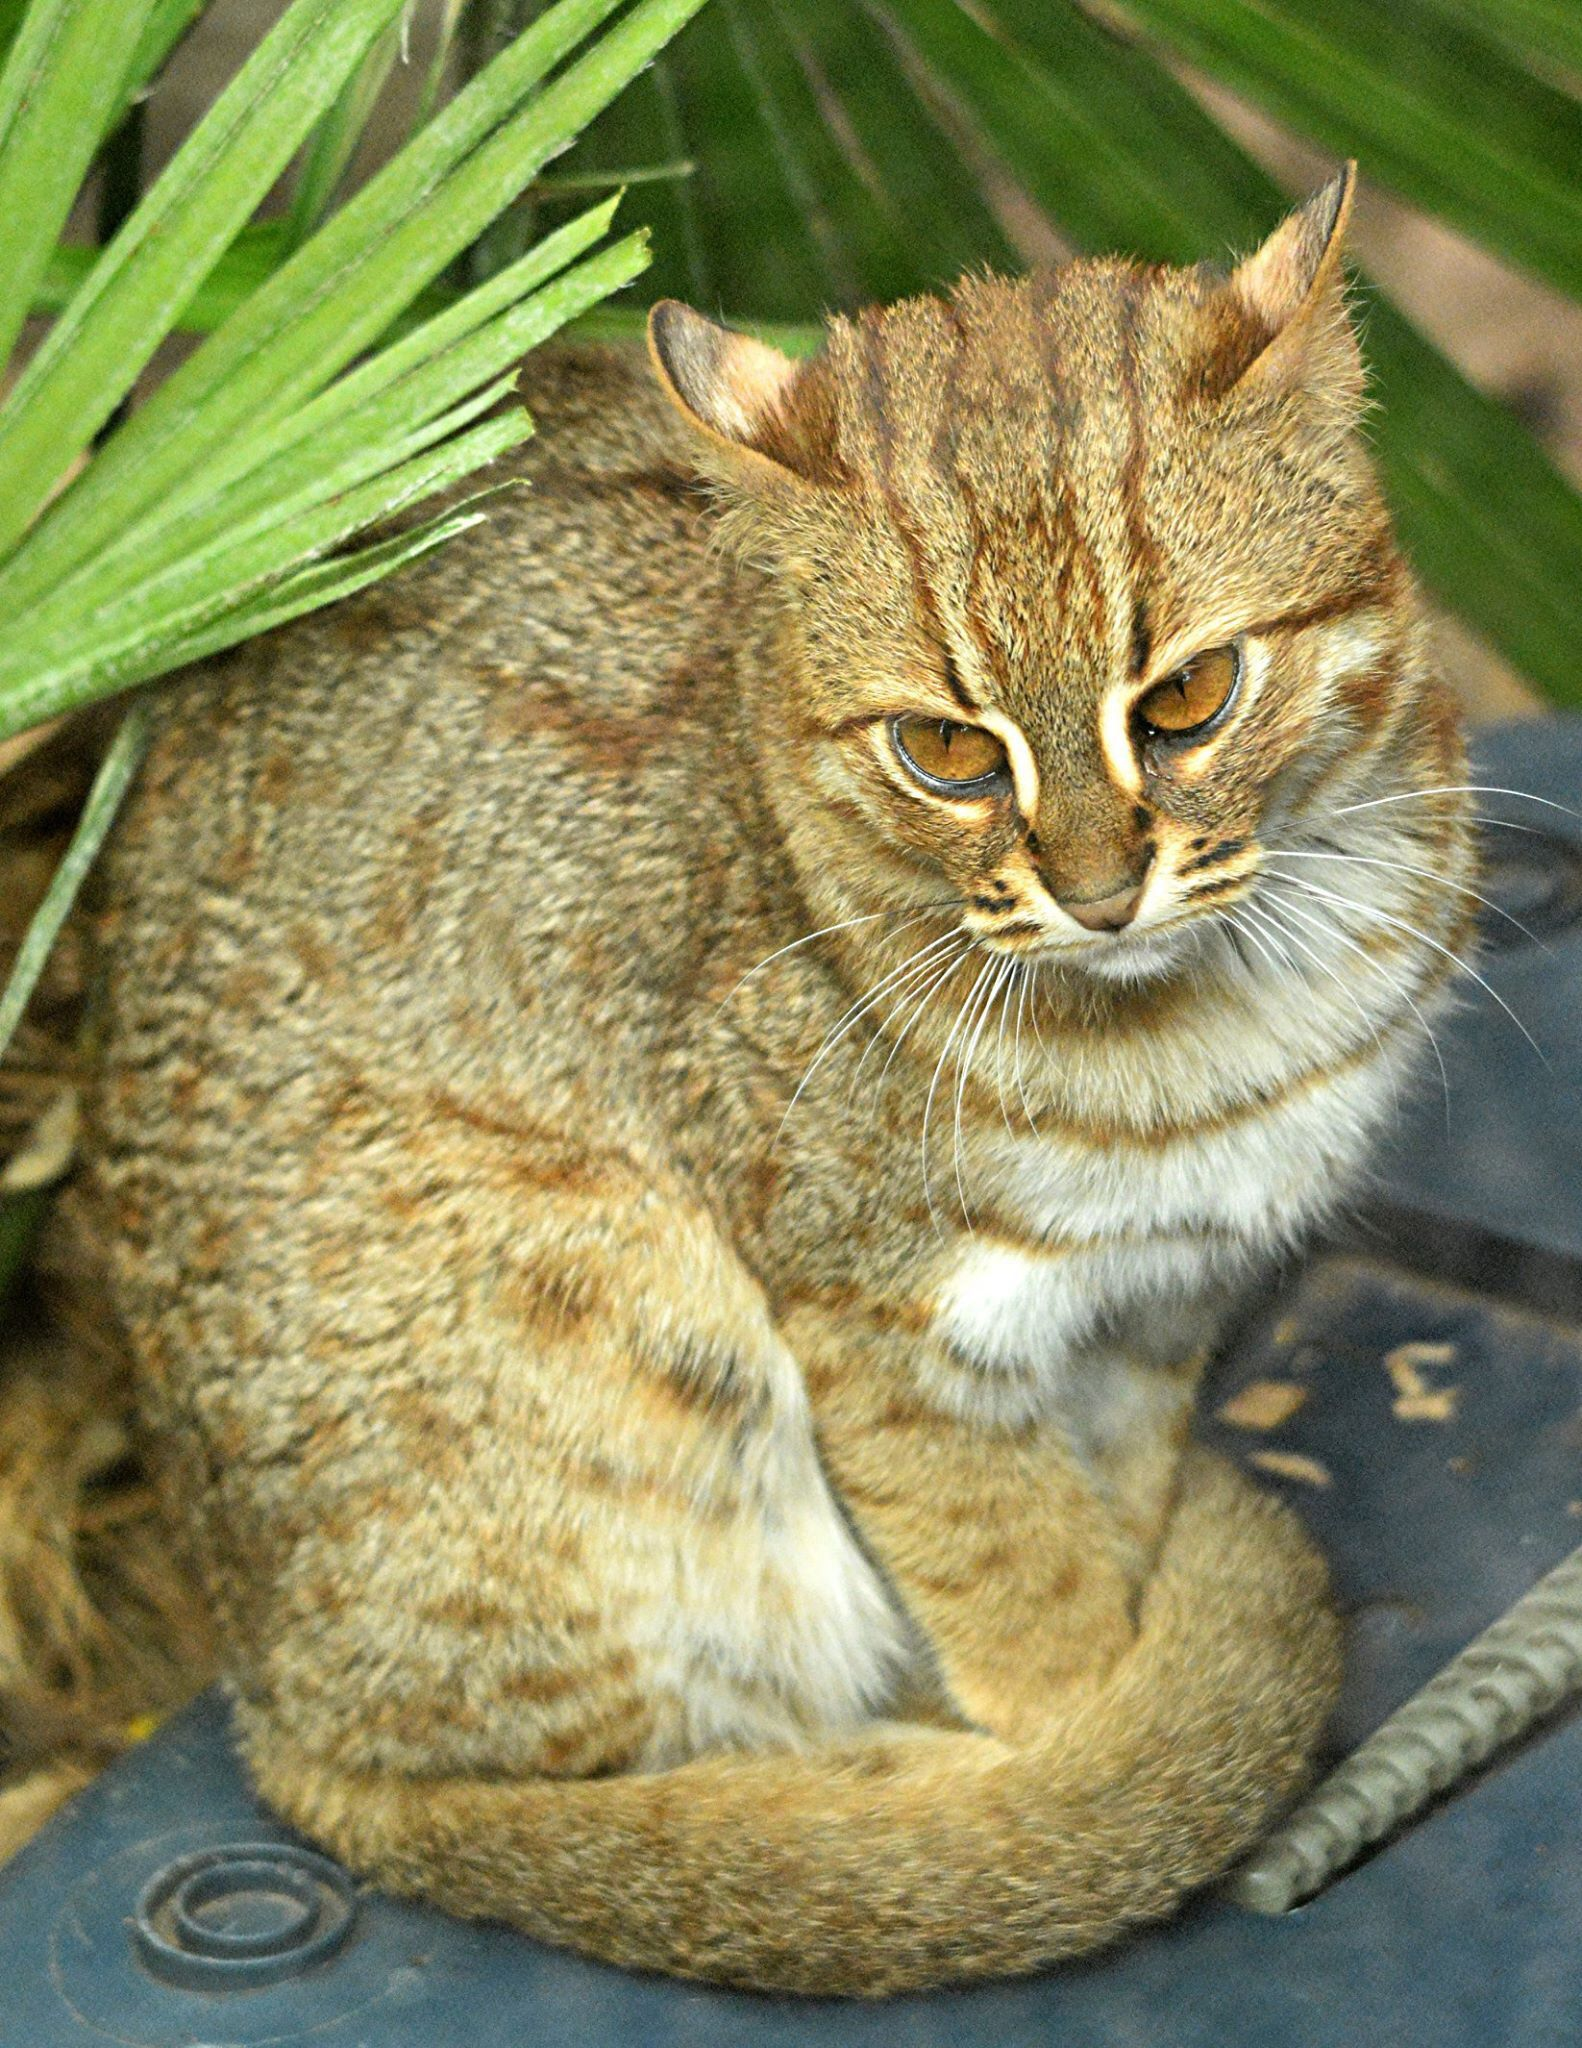 A wild Rusty spotted cat only found in India and Sri Lanka